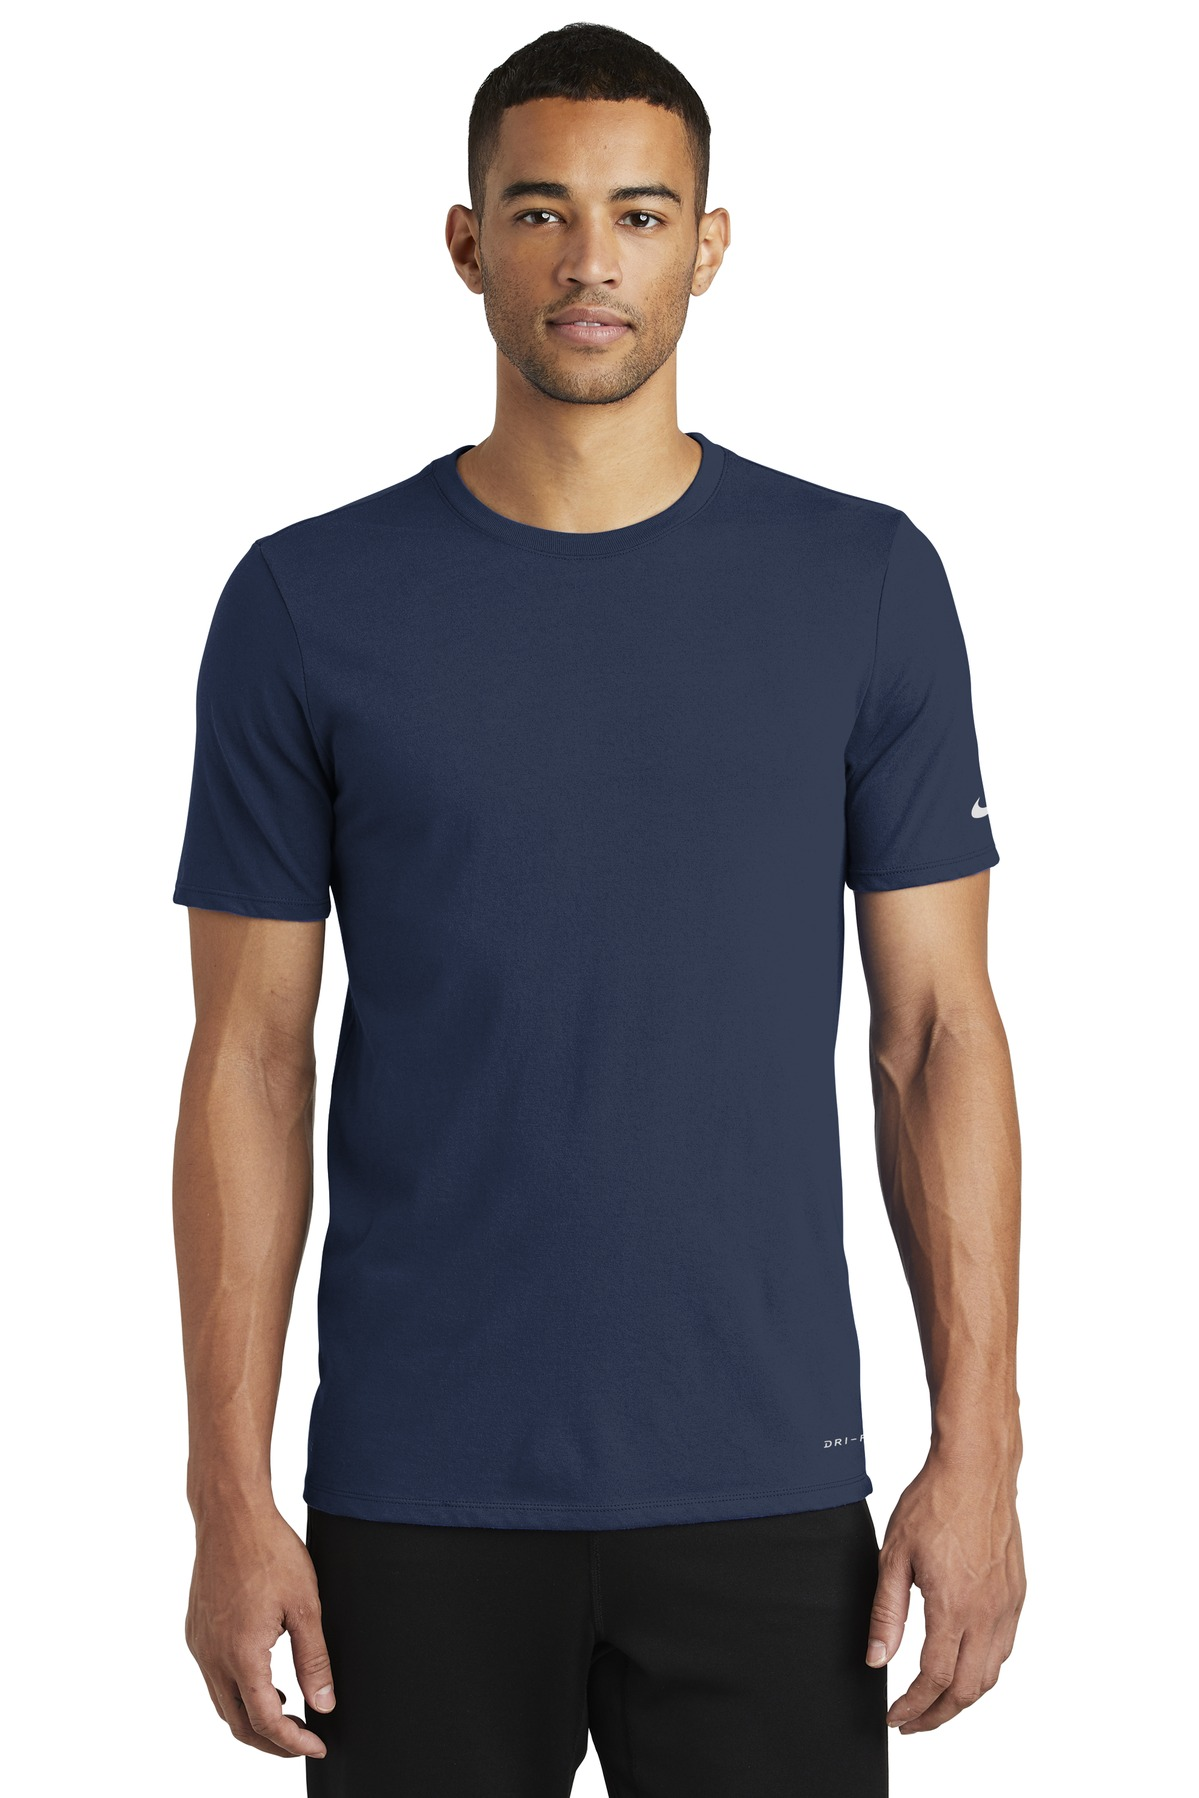 Nike Dri-FIT Cotton/Poly Tee. NKBQ5231 - College Navy